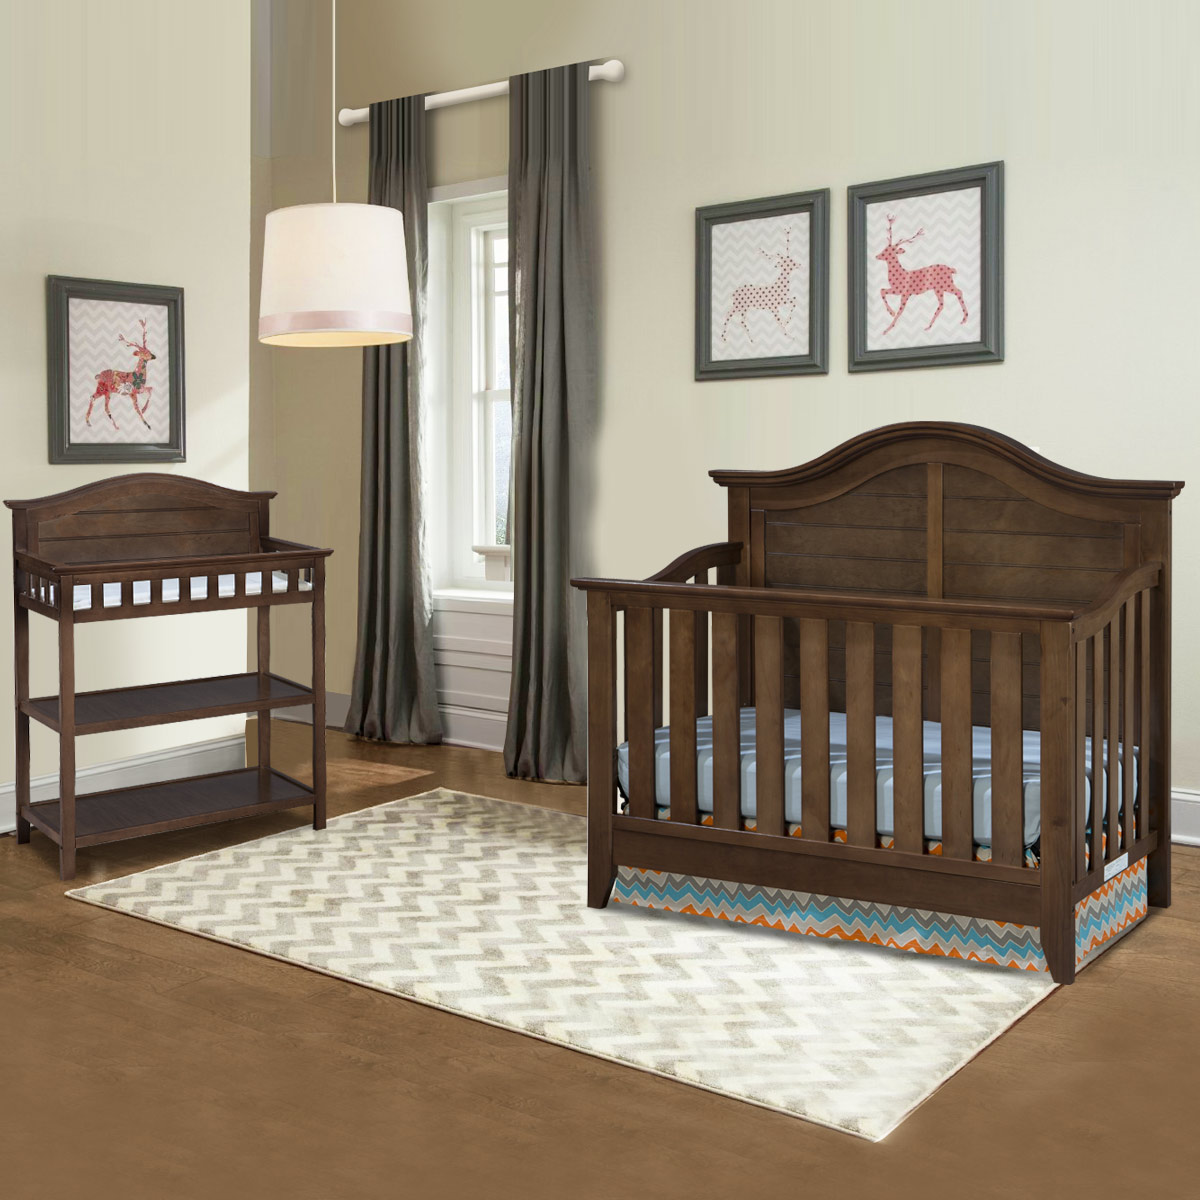 Thomasville 2 Piece Nursery Set Southern Dunes Lifestyle Crib And Dressing Table In Dove Brown Free